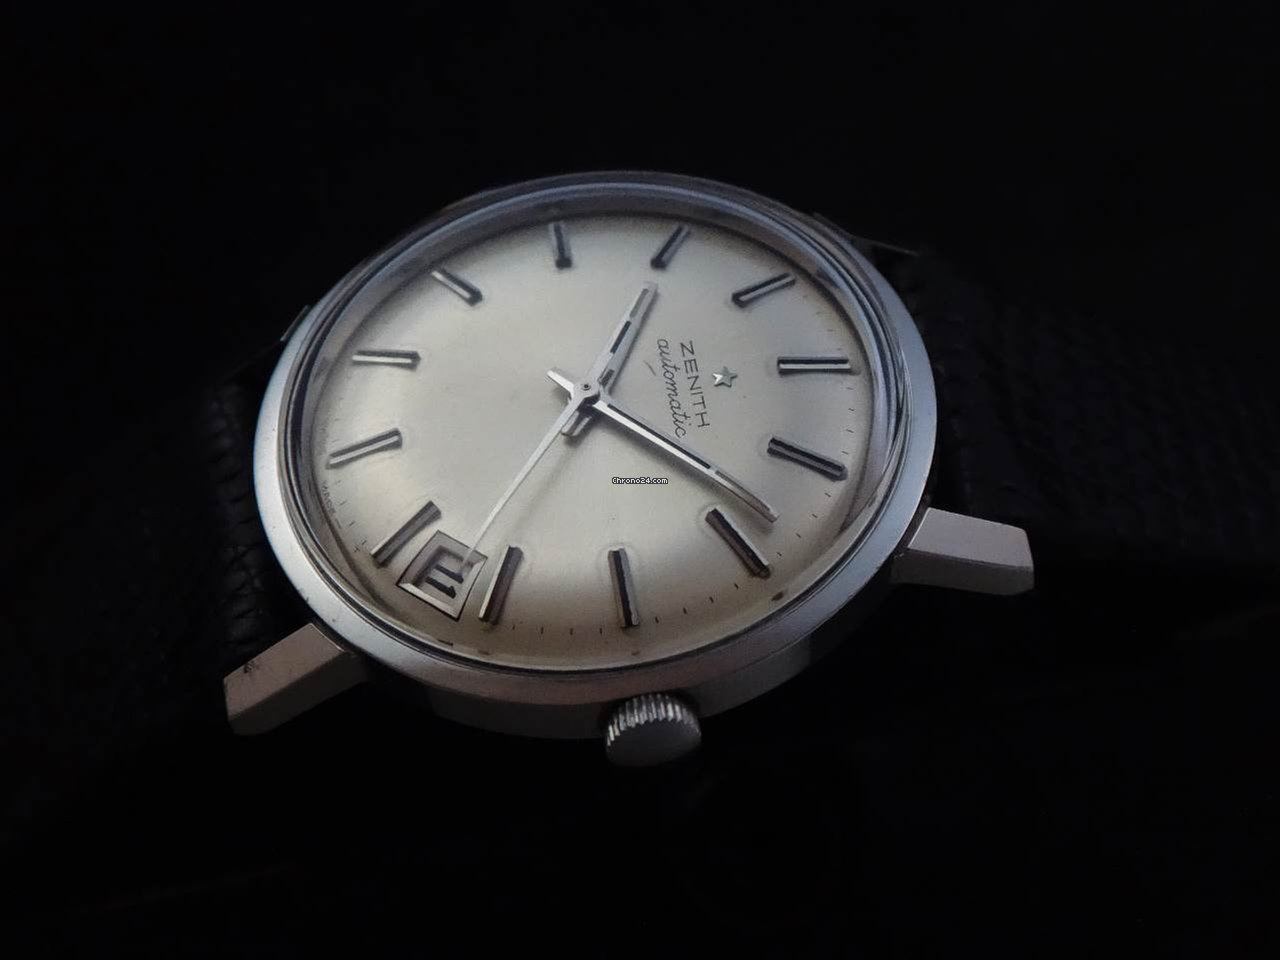 Zenith Vintage Automatic Watch 60's sold on Chrono24